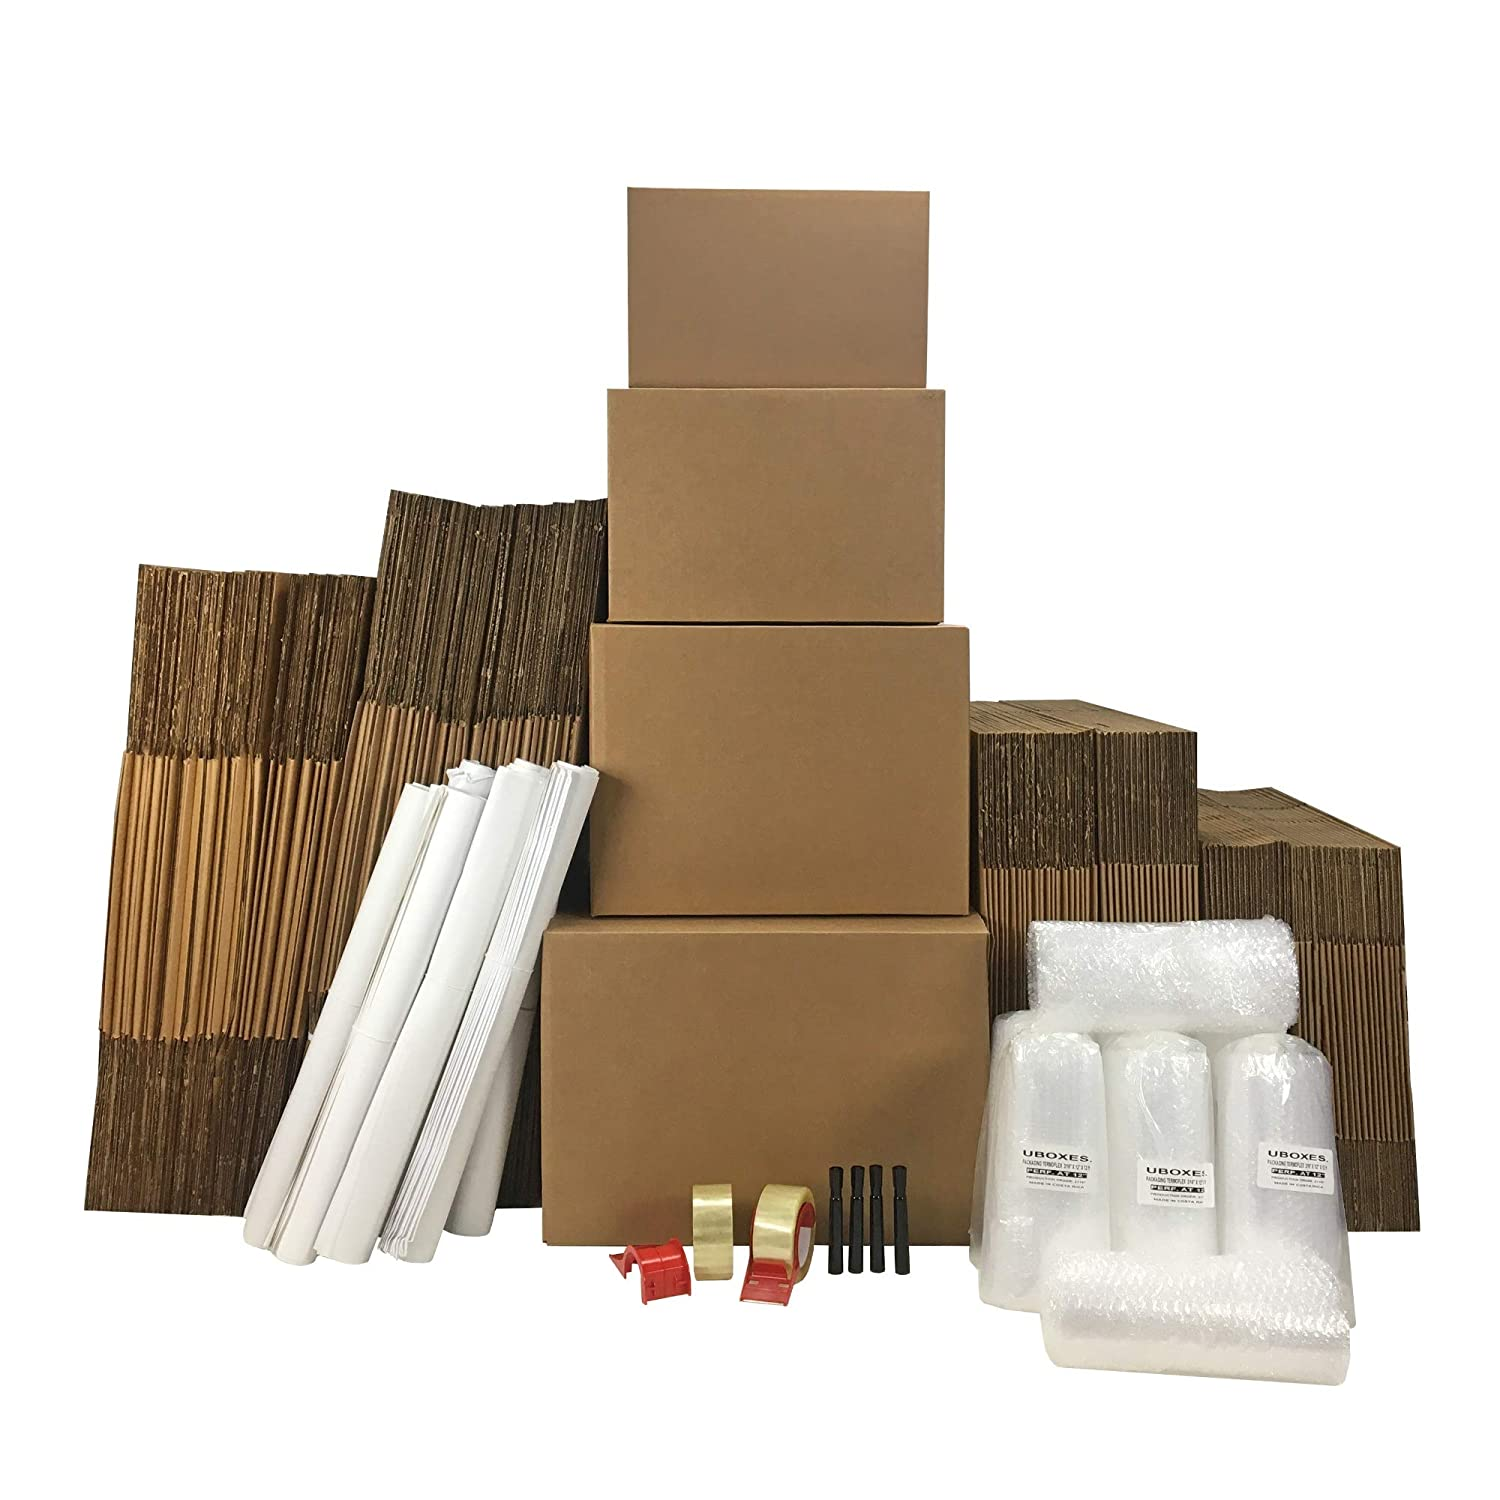 Image of 8 Room Basic Moving Kit 113 Boxes & $128 in Packing Supplies. Home and Kitchen